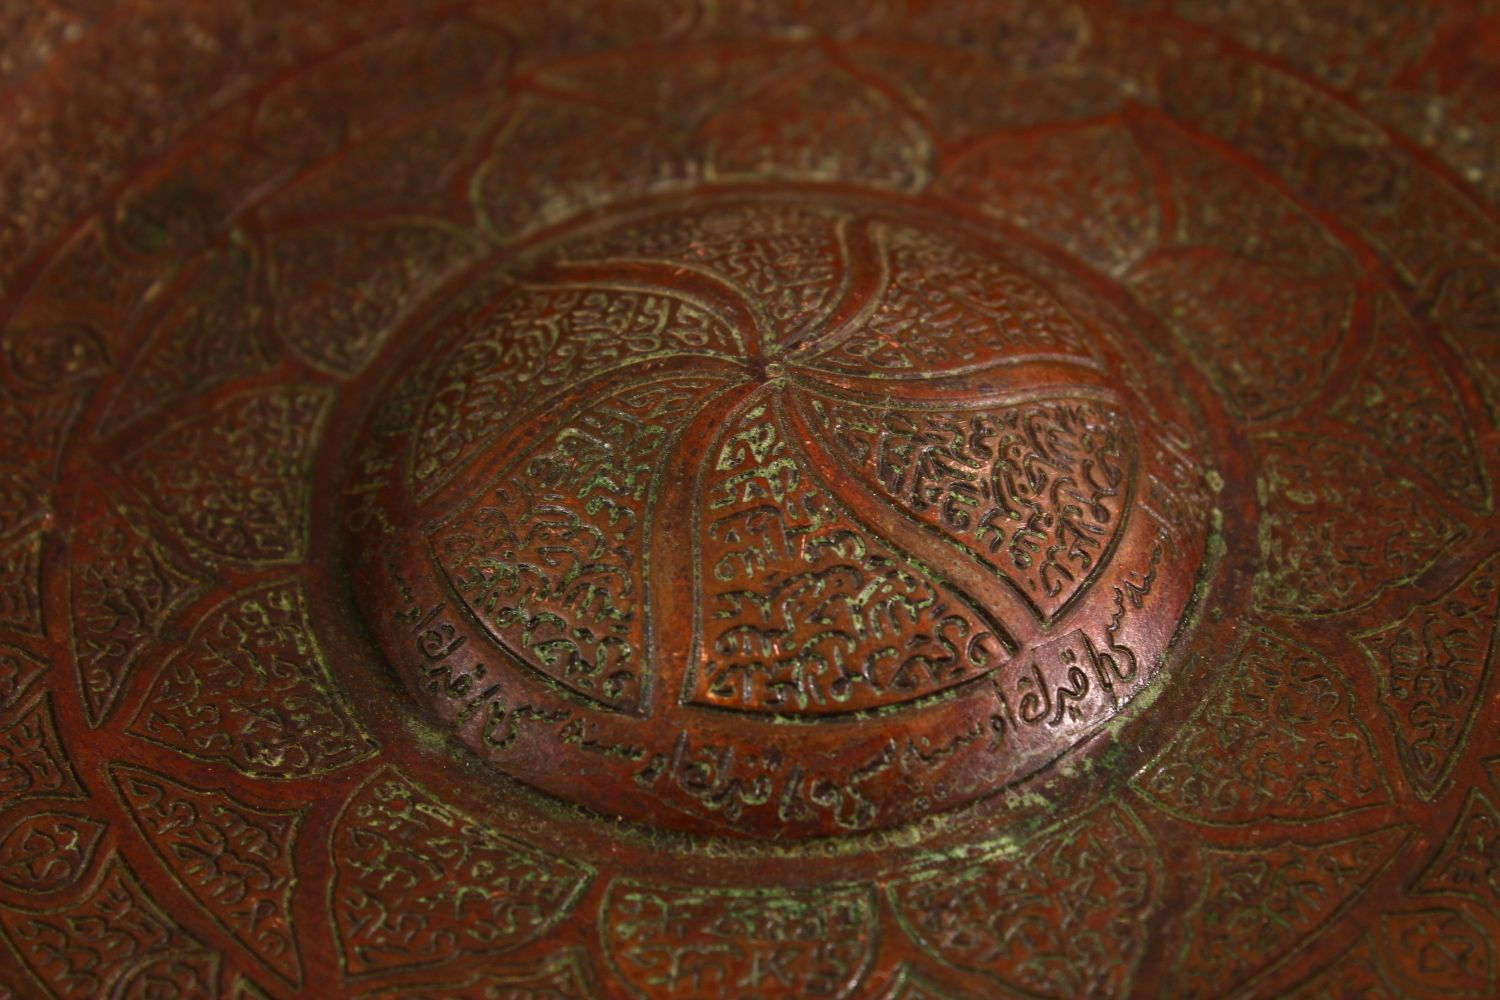 A GOOD PERSIAN ENGRAVED SIGNED BRASS MAGIC BOWL, the interior carved with a profuse amount of - Image 4 of 6